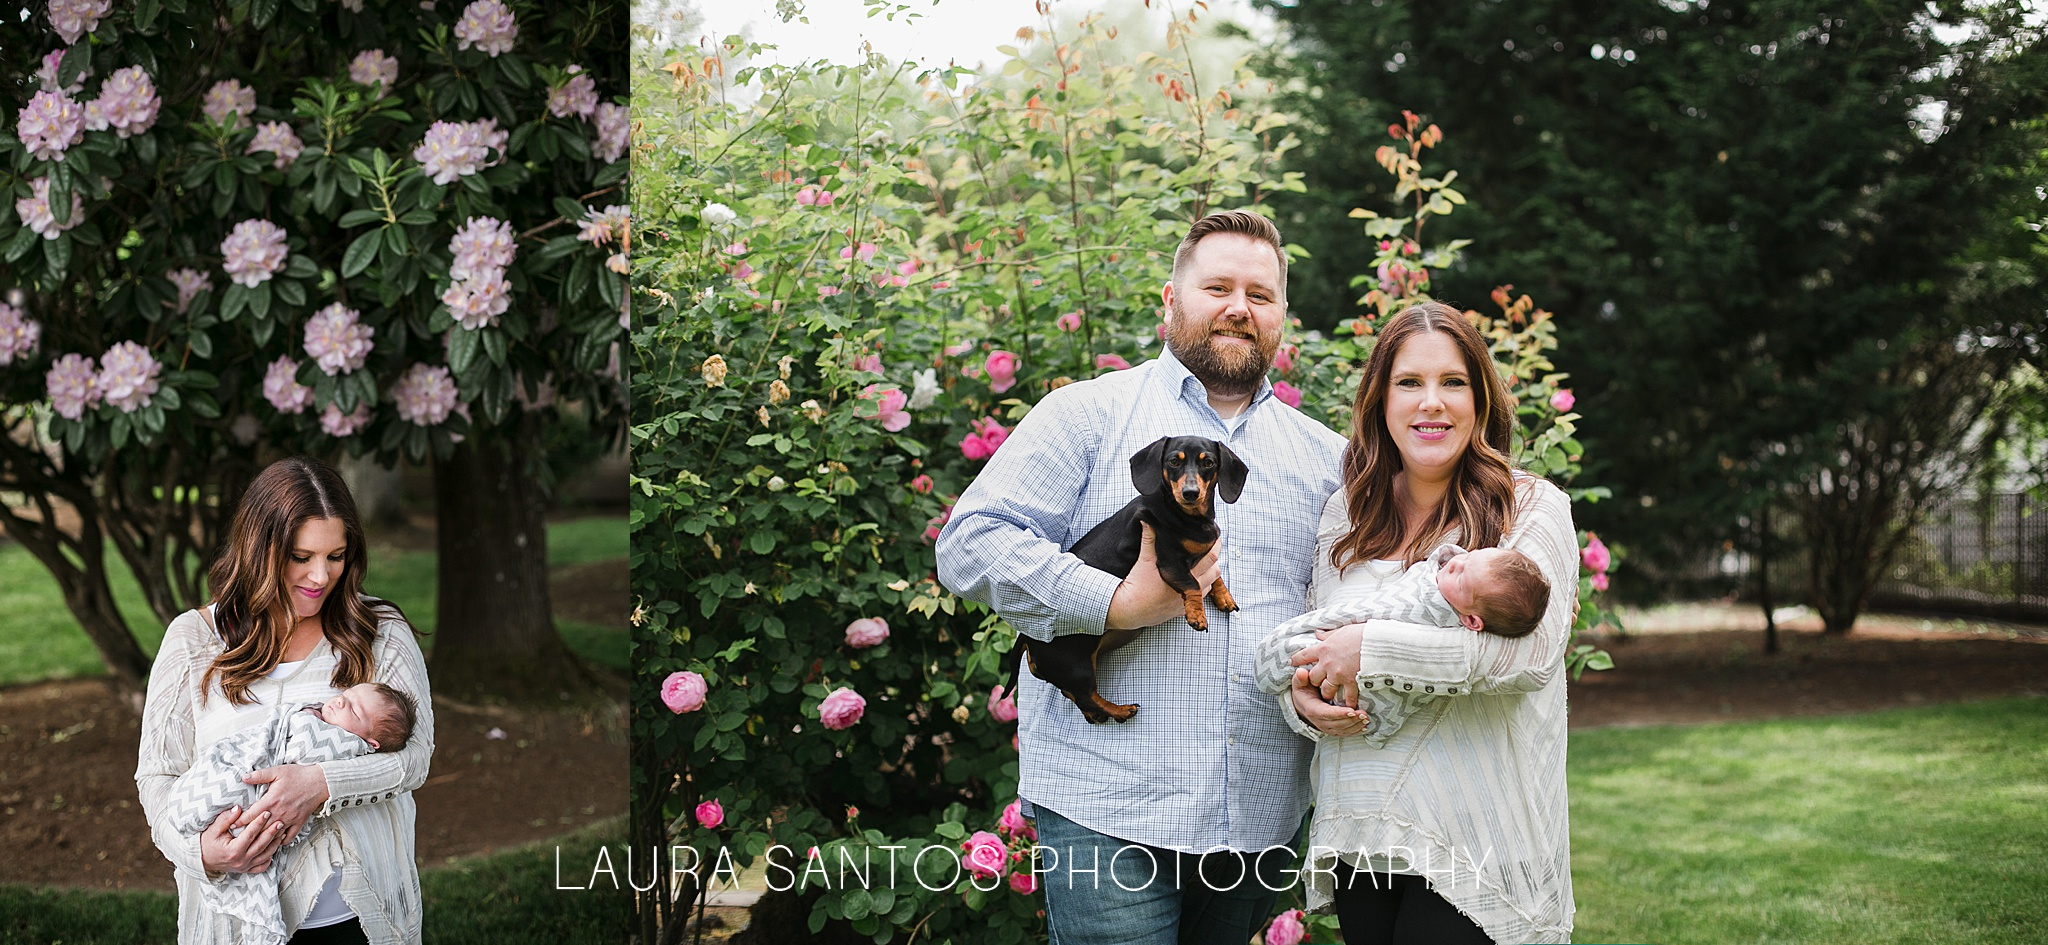 Laura Santos Photography Portland Oregon Family Photographer_0992.jpg